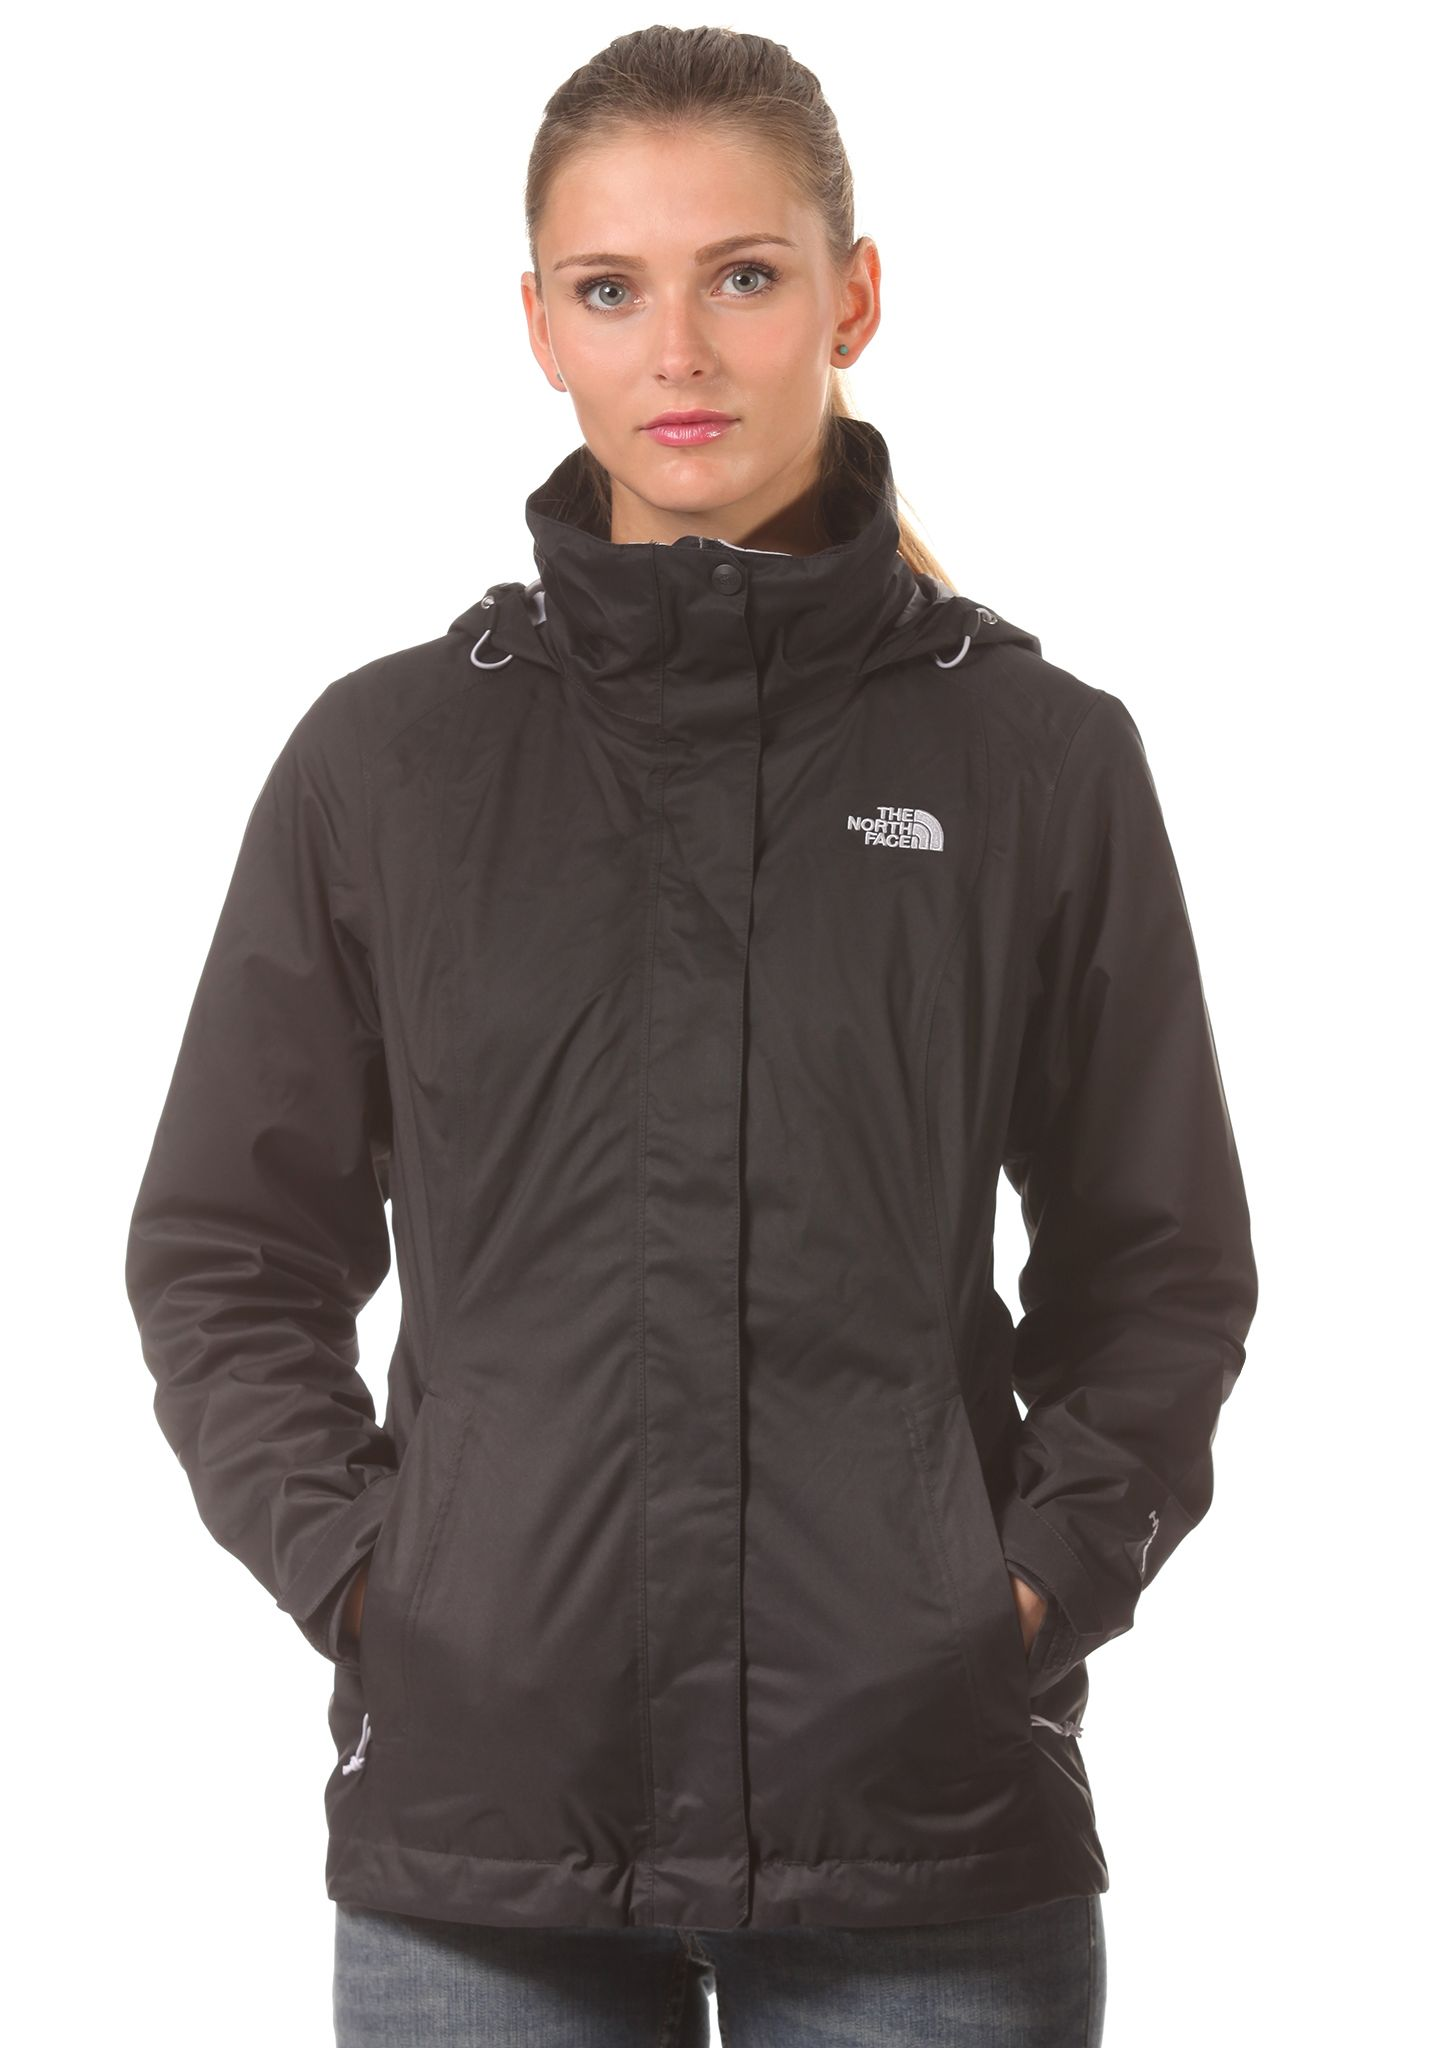 THE NORTH FACE Evolve II Triclimate Outdoorjack voor Dames Zwart